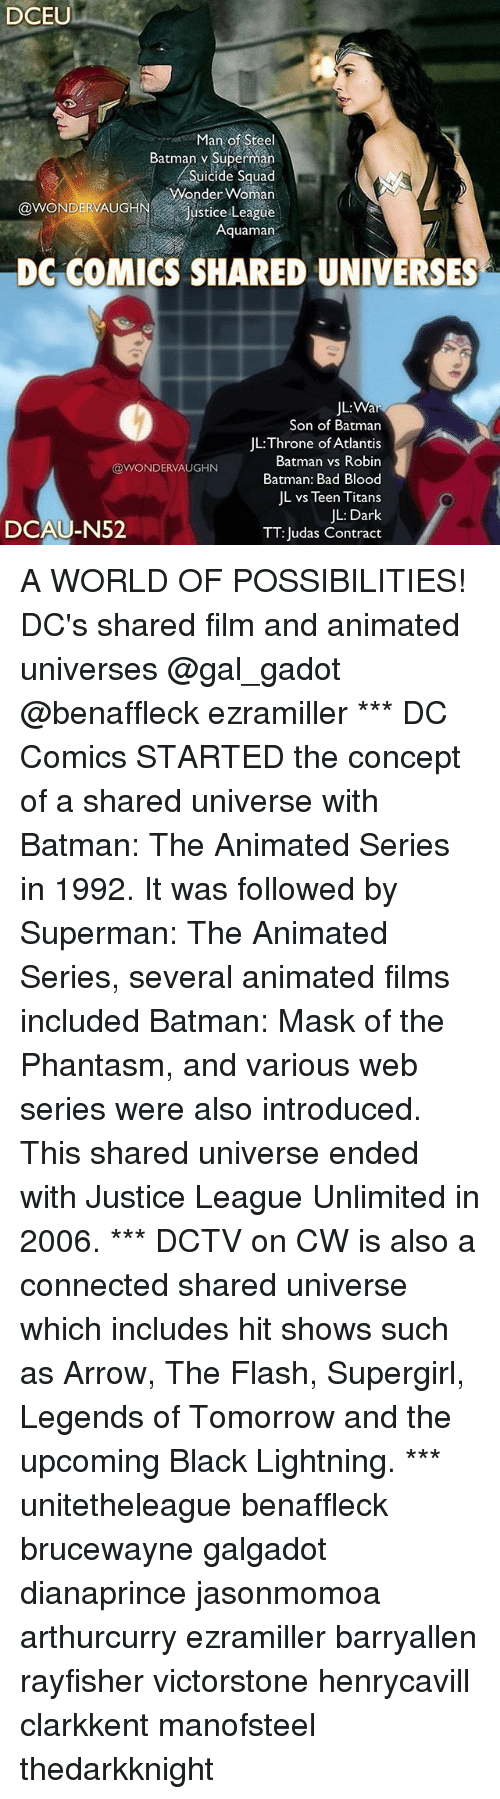 """Bad, Bad Blood, and Batman: DCEU  Man of Steel  Batman v Superman  Suicide Squad  Wonder Woman  @WONDERAUGHN,..""""Justice League  Aquaman  DG COMICS SHARED UNIVERSES  JL:  Son of Batman  JL:Throne of Atlantis  Batman vs Robin  Batman: Bad Blood  JL vs Teen Titans  JL: Dark  TT: Judas Contract  @WONDERVAUGHN  DCAU-N52 A WORLD OF POSSIBILITIES! DC's shared film and animated universes @gal_gadot @benaffleck ezramiller *** DC Comics STARTED the concept of a shared universe with Batman: The Animated Series in 1992. It was followed by Superman: The Animated Series, several animated films included Batman: Mask of the Phantasm, and various web series were also introduced. This shared universe ended with Justice League Unlimited in 2006. *** DCTV on CW is also a connected shared universe which includes hit shows such as Arrow, The Flash, Supergirl, Legends of Tomorrow and the upcoming Black Lightning. *** unitetheleague benaffleck brucewayne galgadot dianaprince jasonmomoa arthurcurry ezramiller barryallen rayfisher victorstone henrycavill clarkkent manofsteel thedarkknight"""